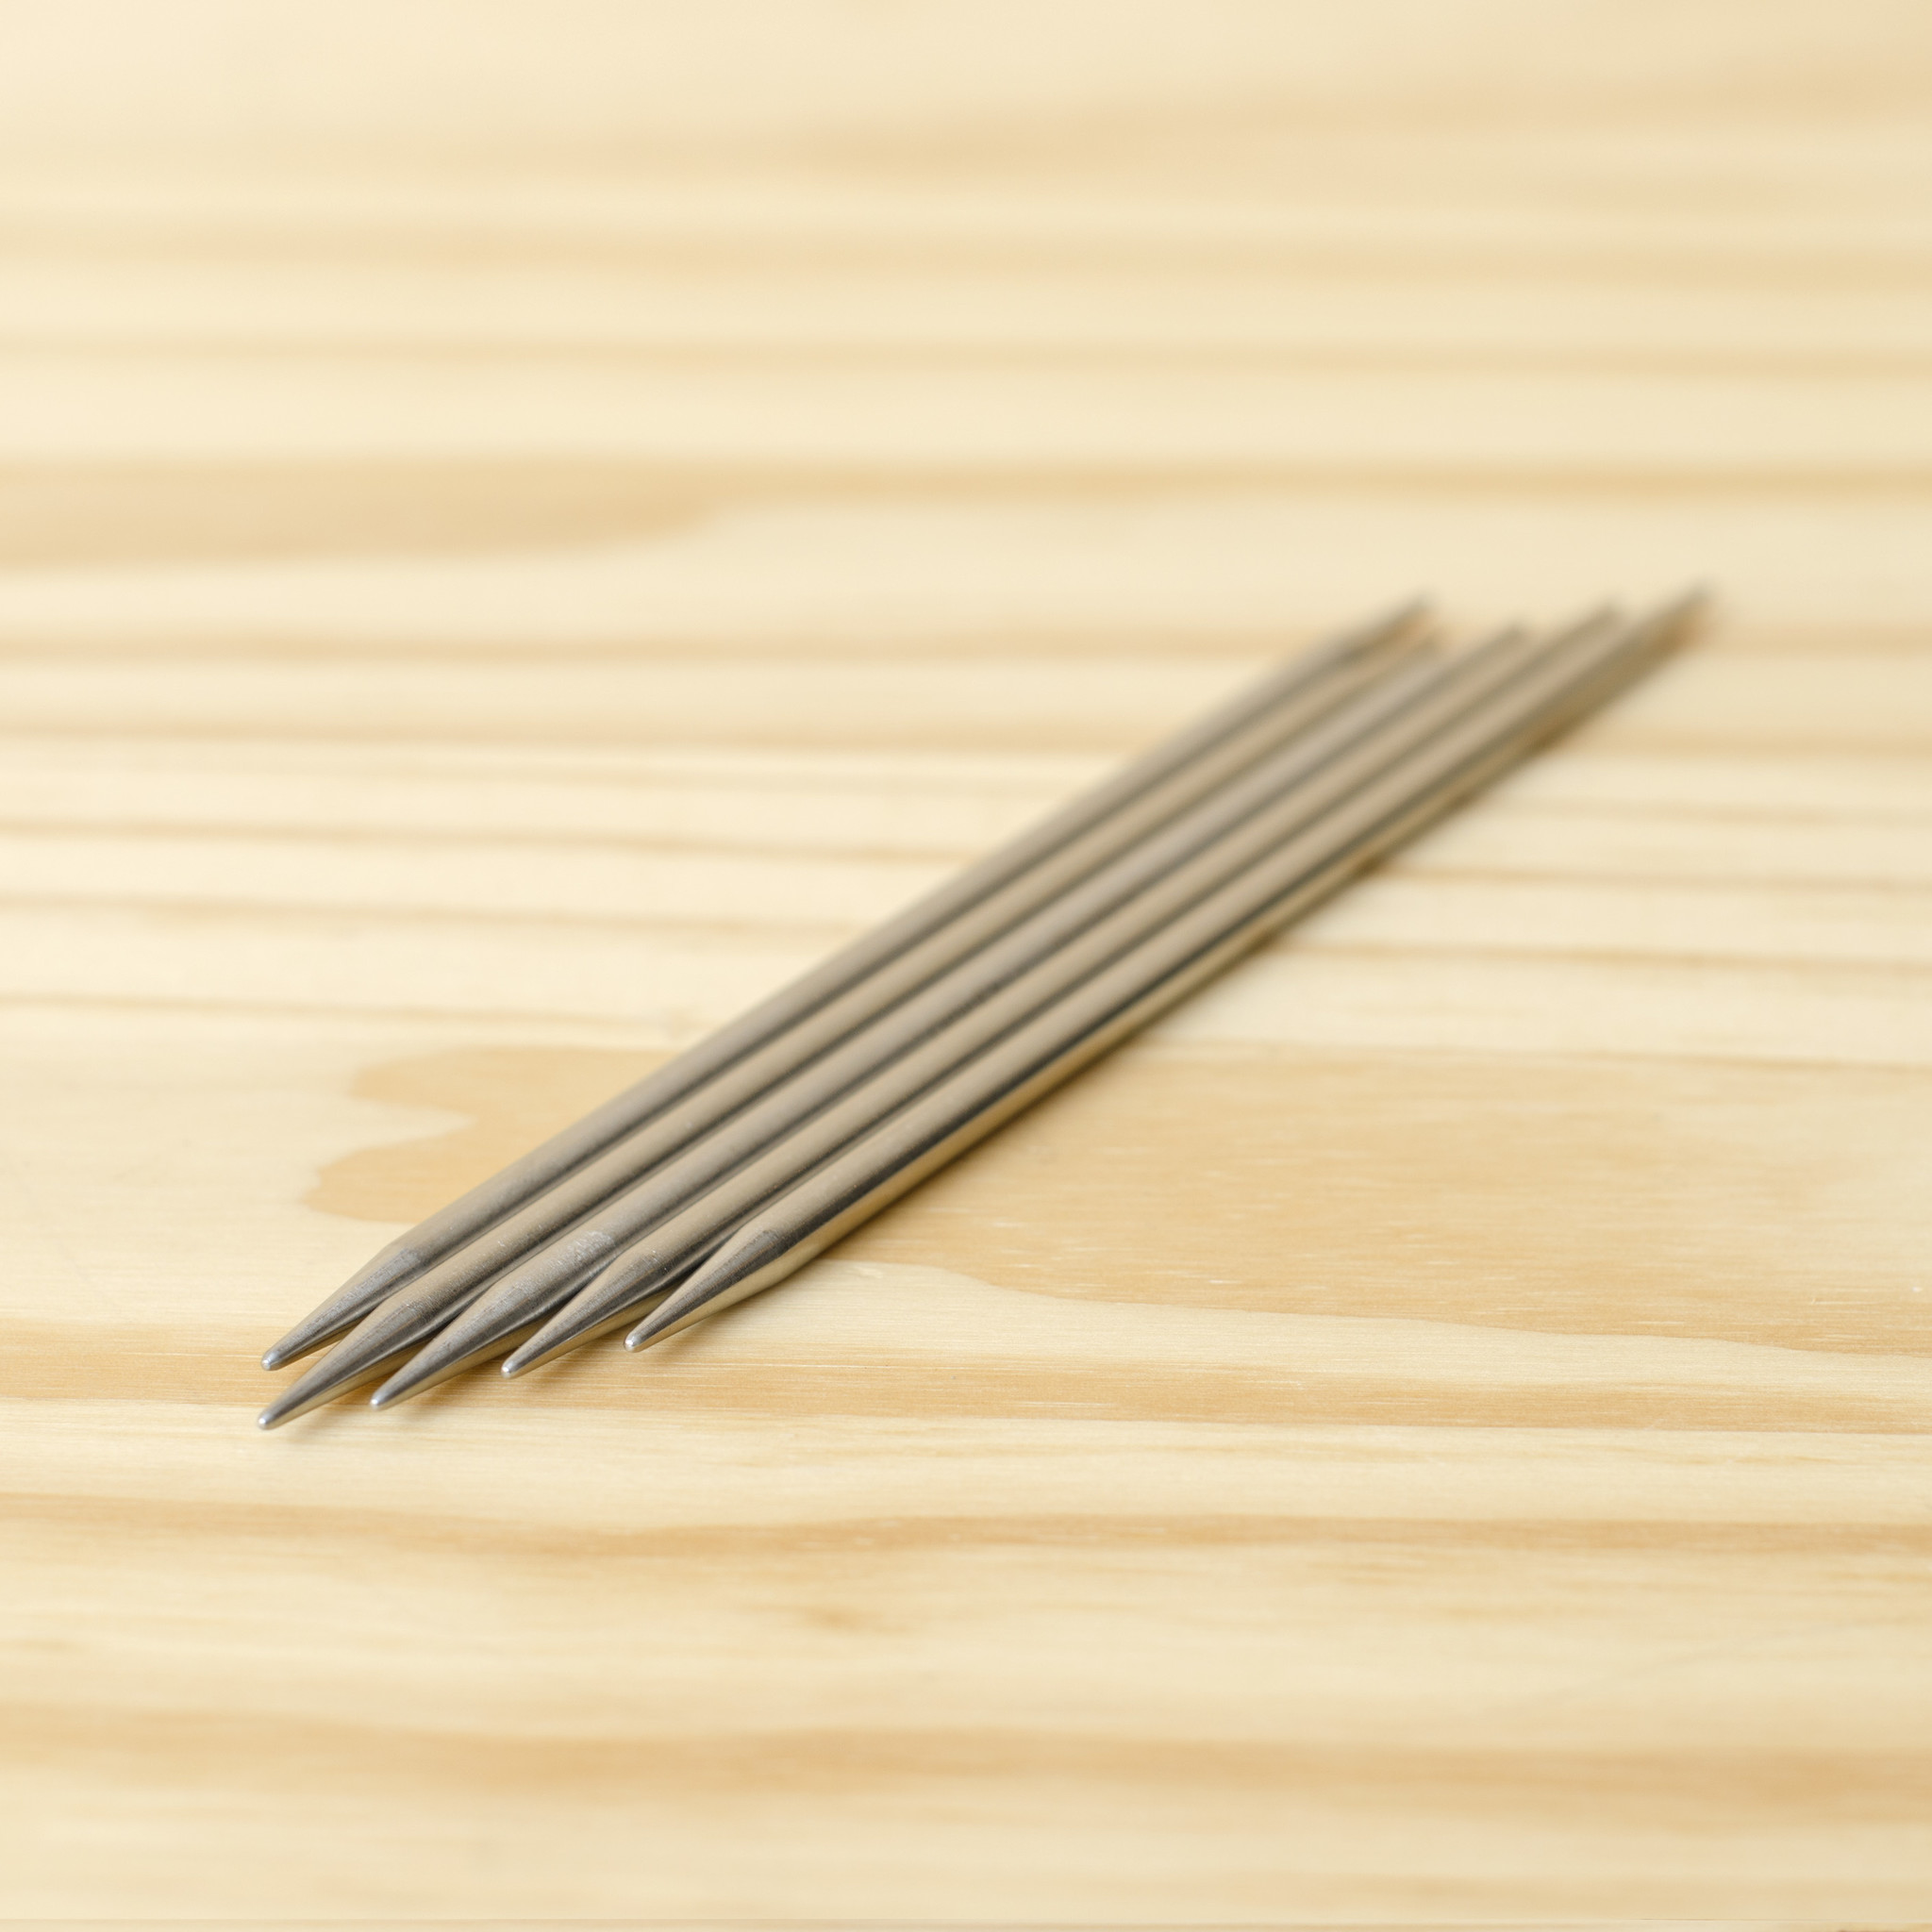 """ChiaoGoo Stainless Steel Double Point Needles 6"""" : US 7/4.5mm"""